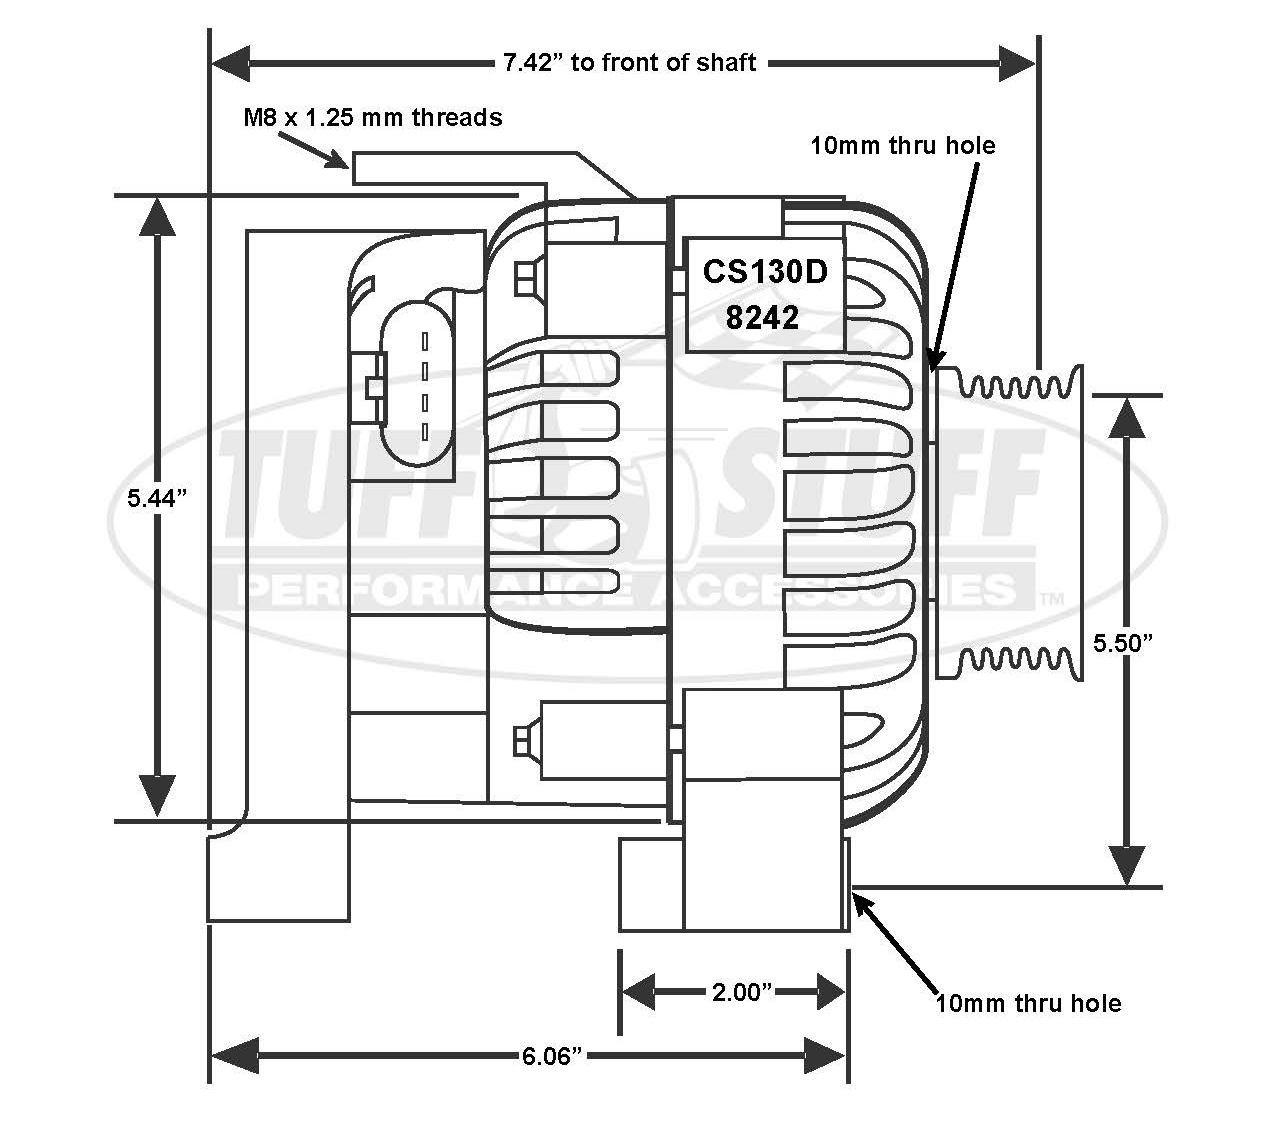 2000 Camaro Cs130d Alternator Wiring Diagram A B Switch Connector 4 1998 2002 Ls1 125 Amp 6 Groove Pulley Chrome On 1992 Chevy Expert